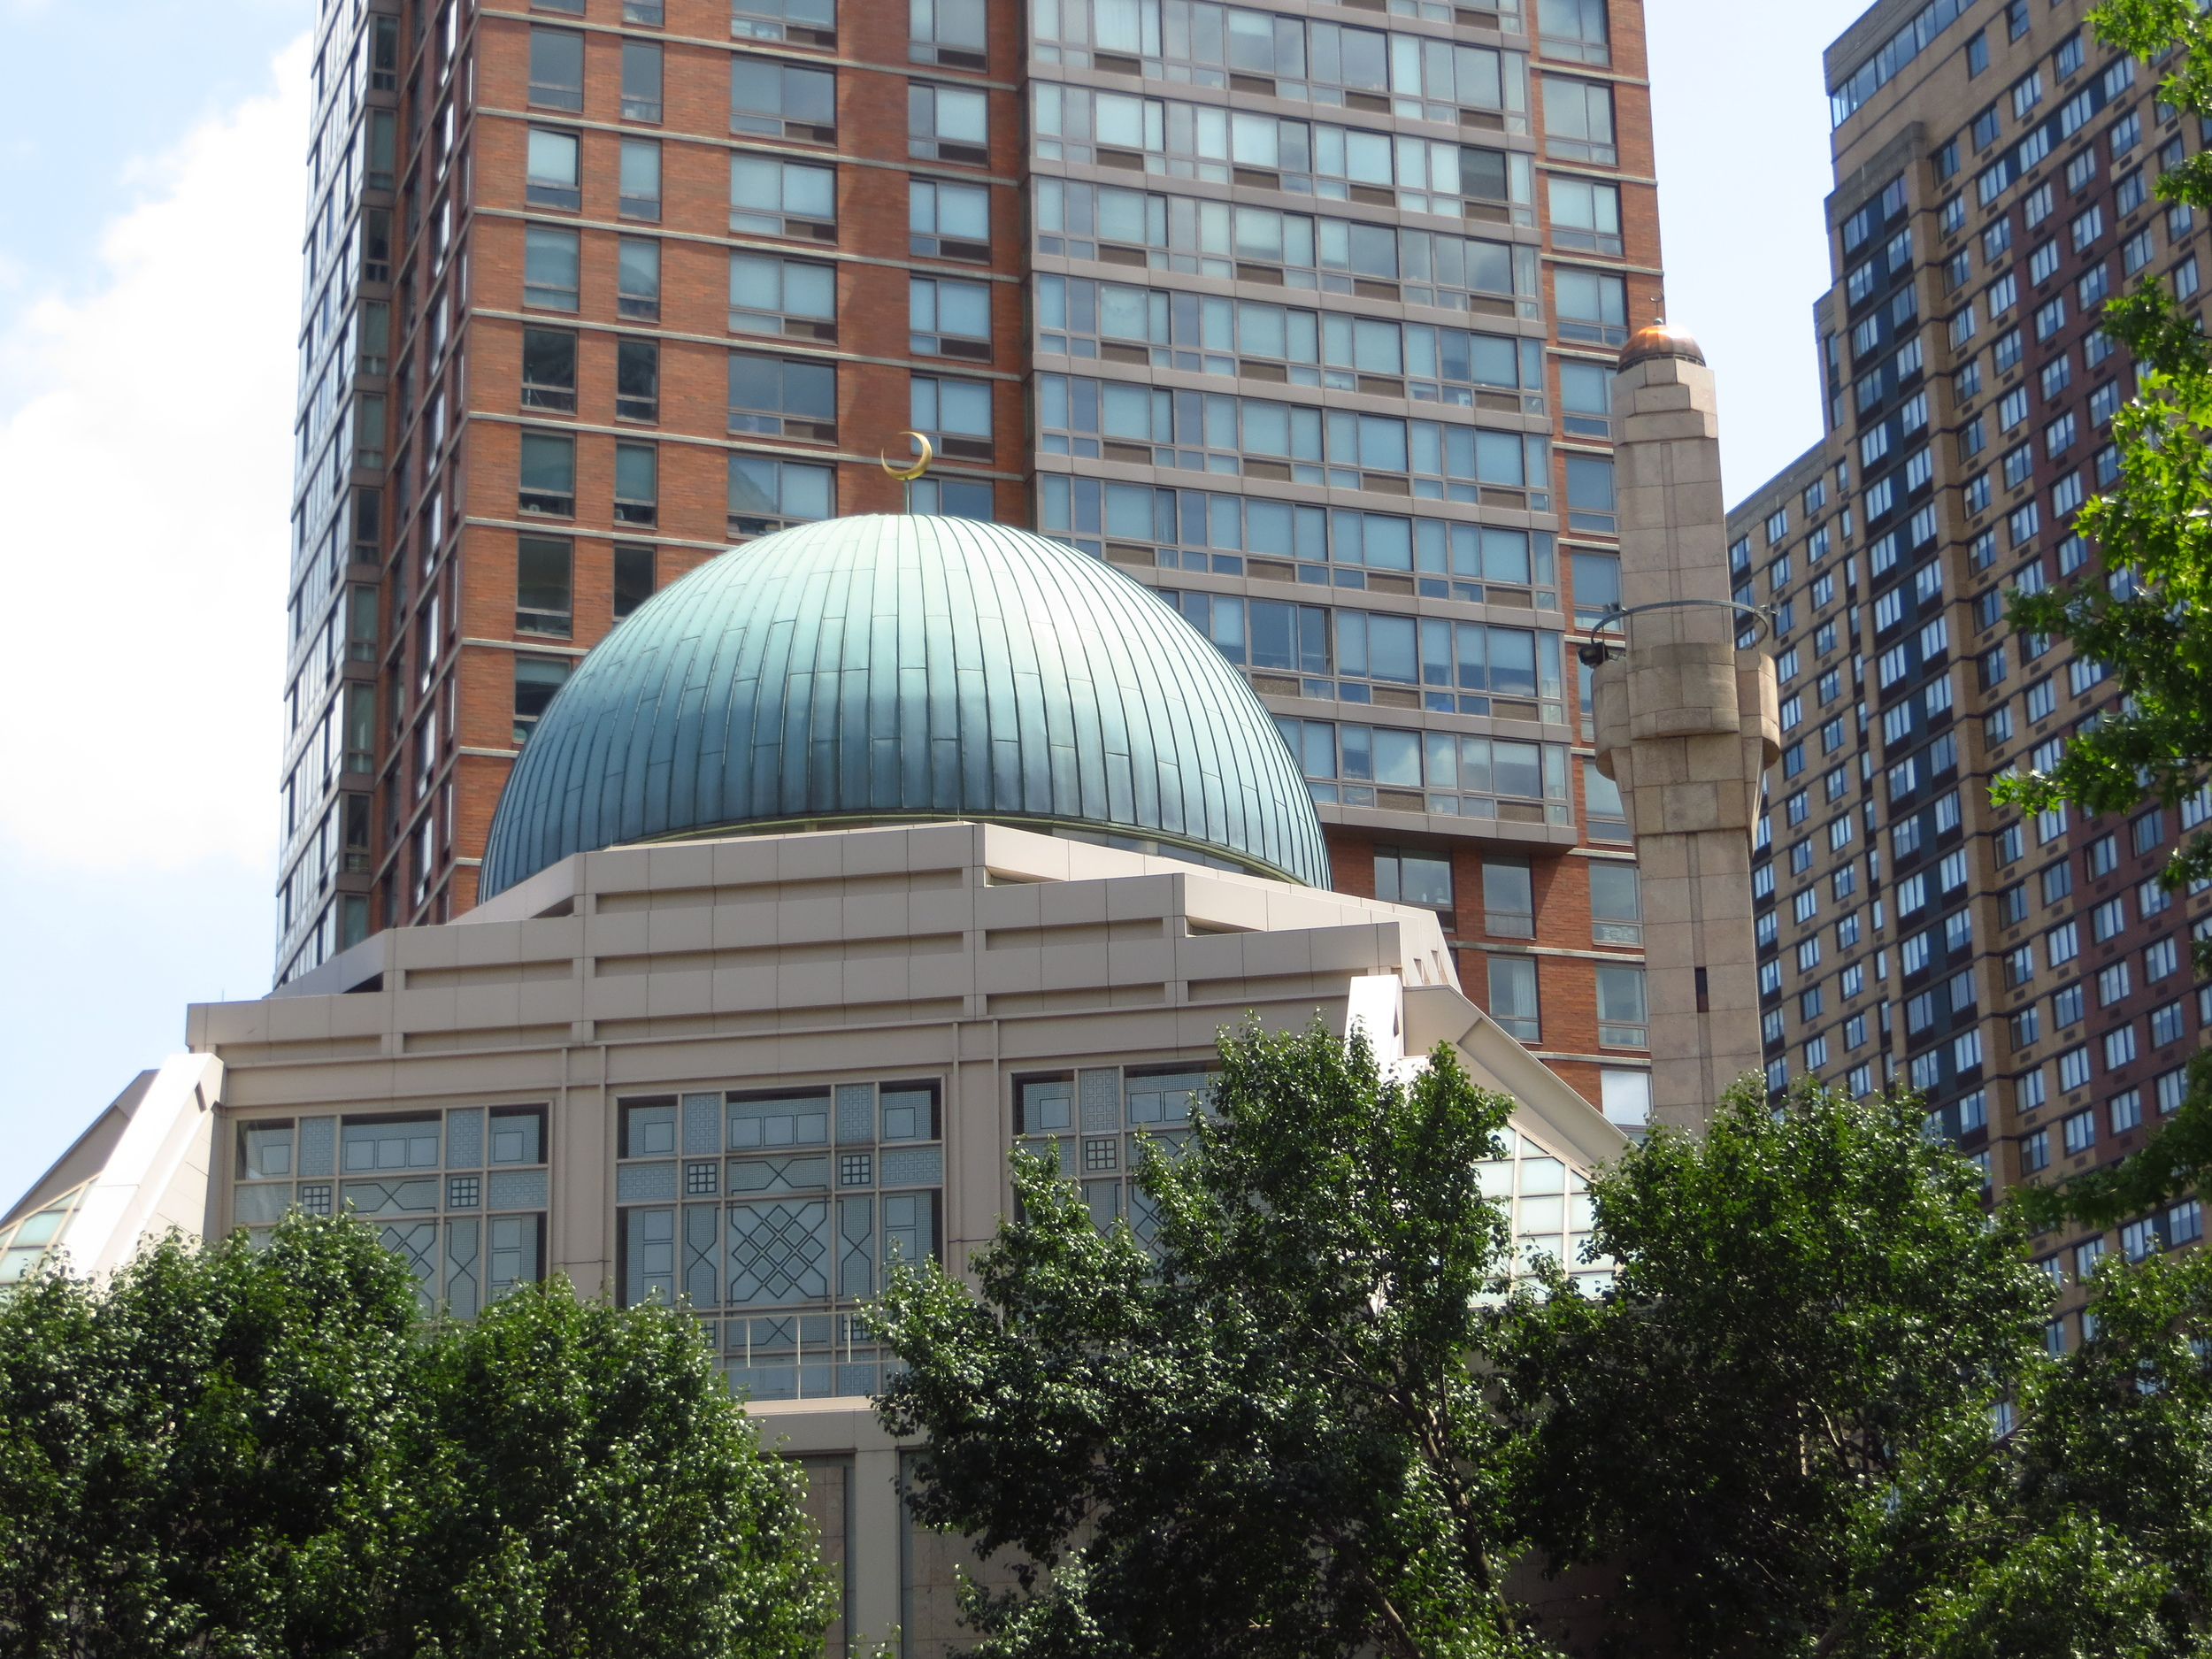 Islamic Cultural Center of NY